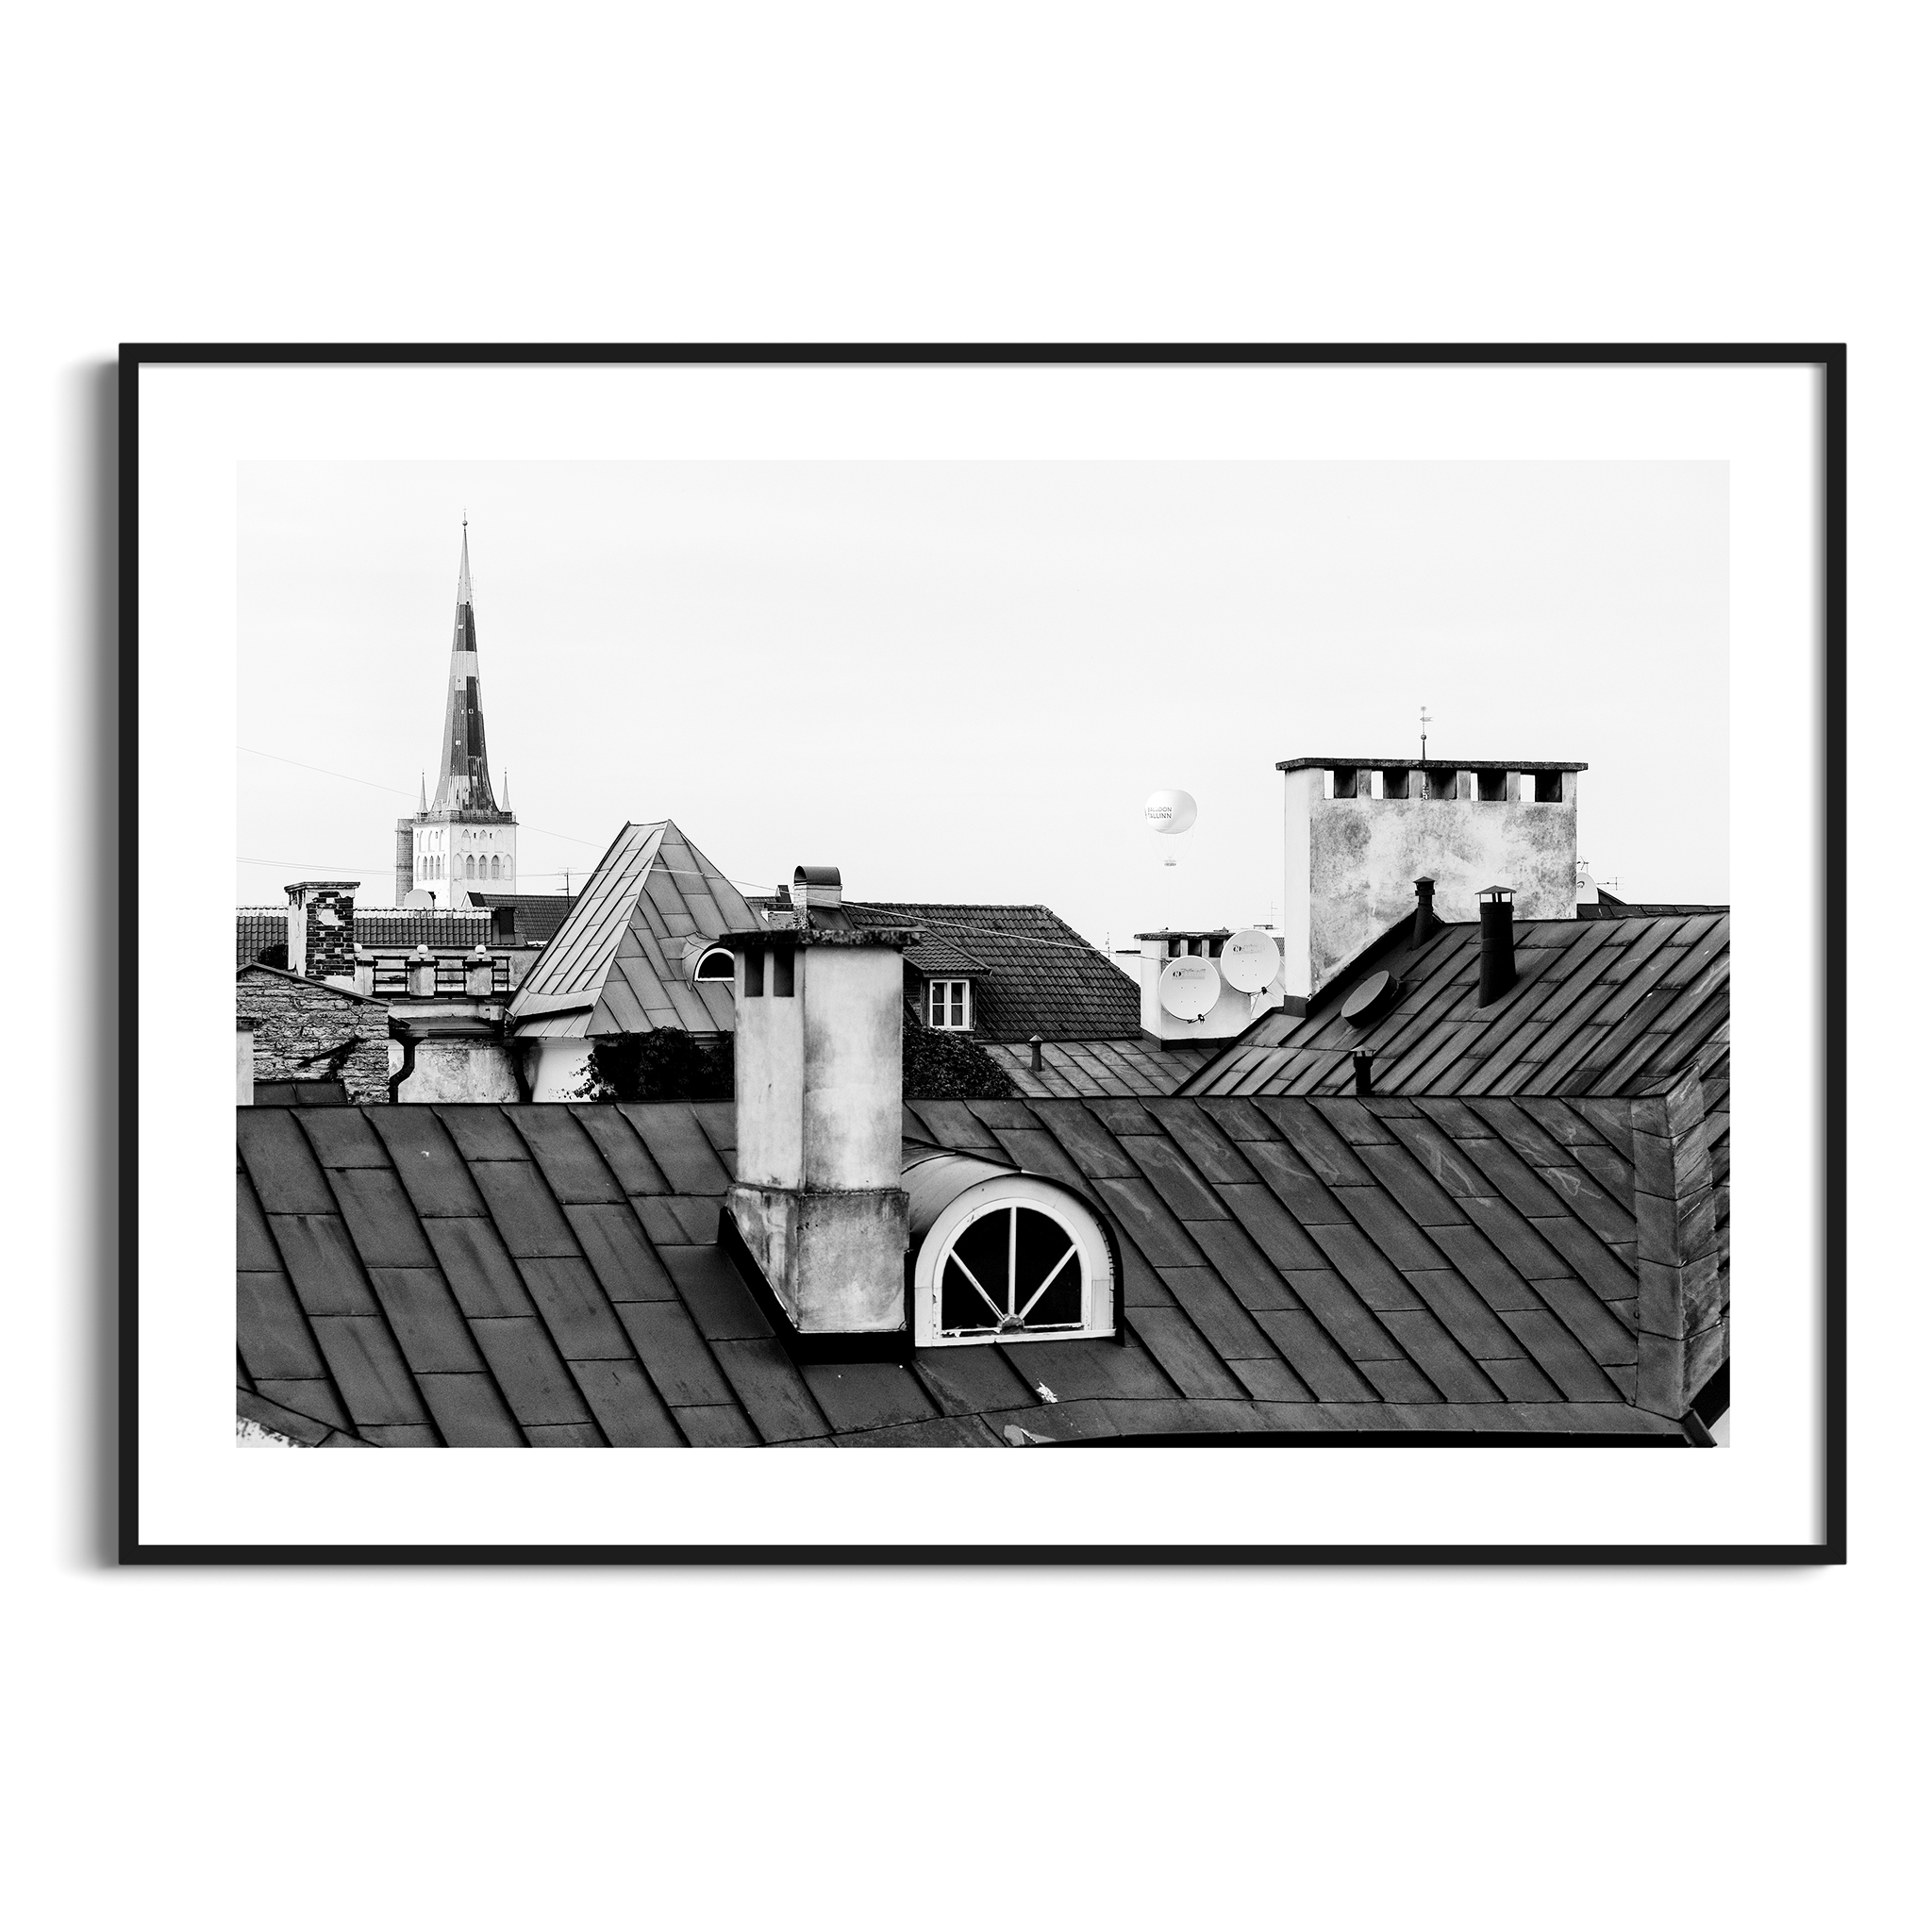 Tallinn Roofs - black and white photography print in black frame with border